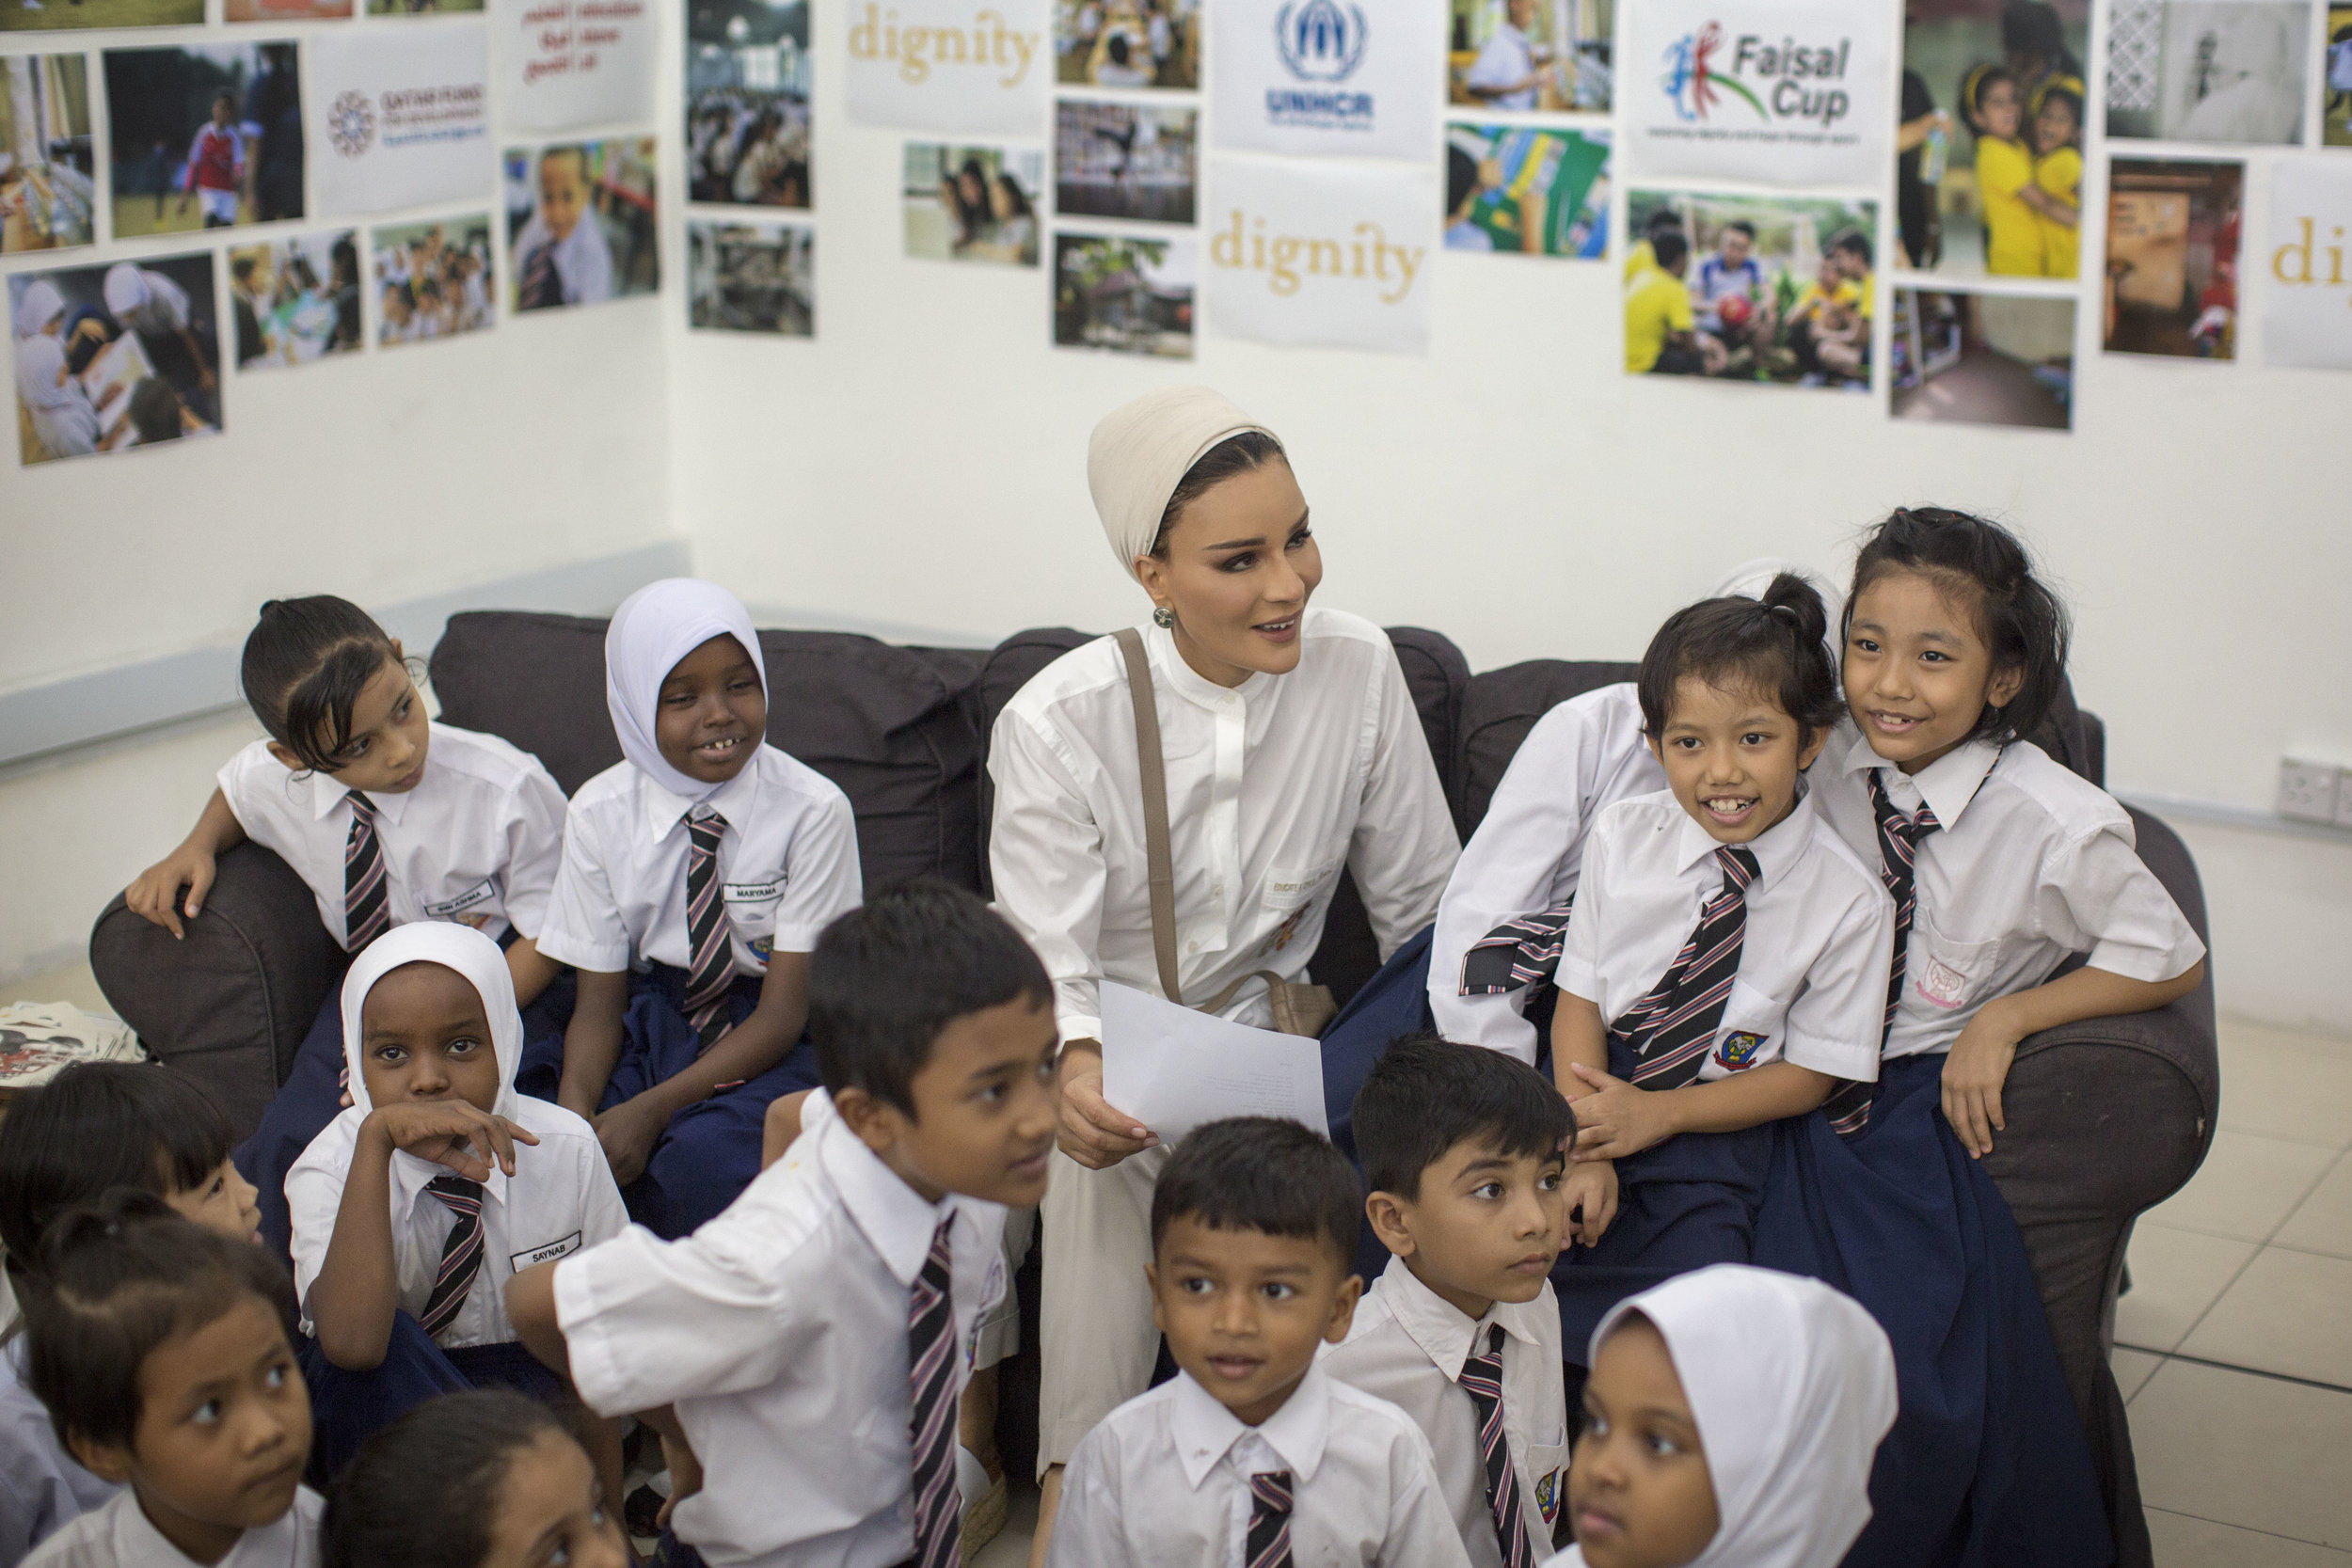 Her Highness Sheikha Moza bint Nasser at Dignity centre, one of 131 learning centers set up by Education Above All.